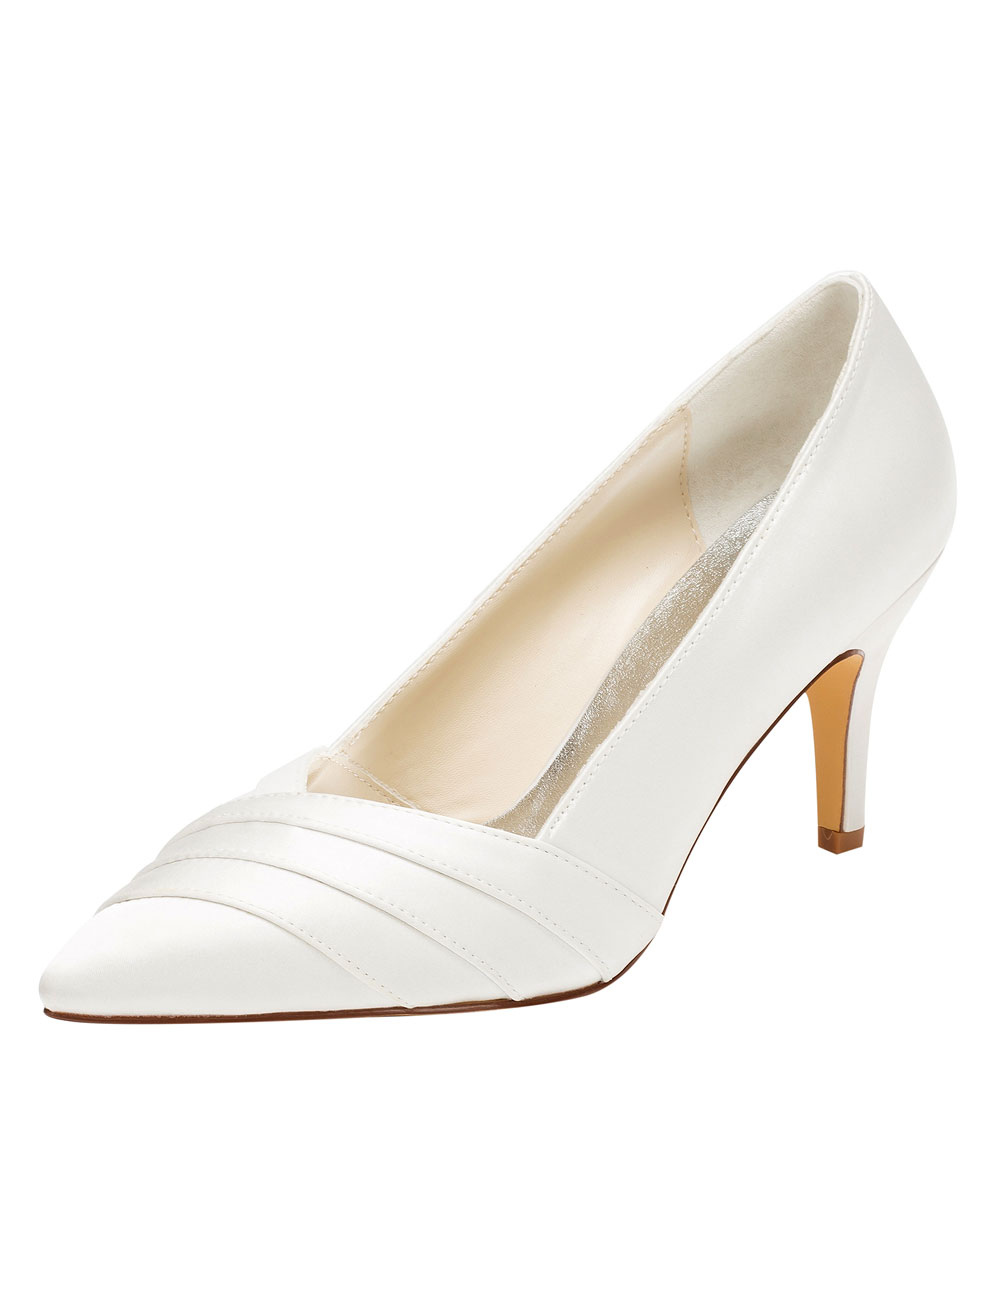 Buy Ivory Wedding Shoes Pointed High Heel Pumps Pleated Slip-on Bridal Shoes for $49.39 in Milanoo store